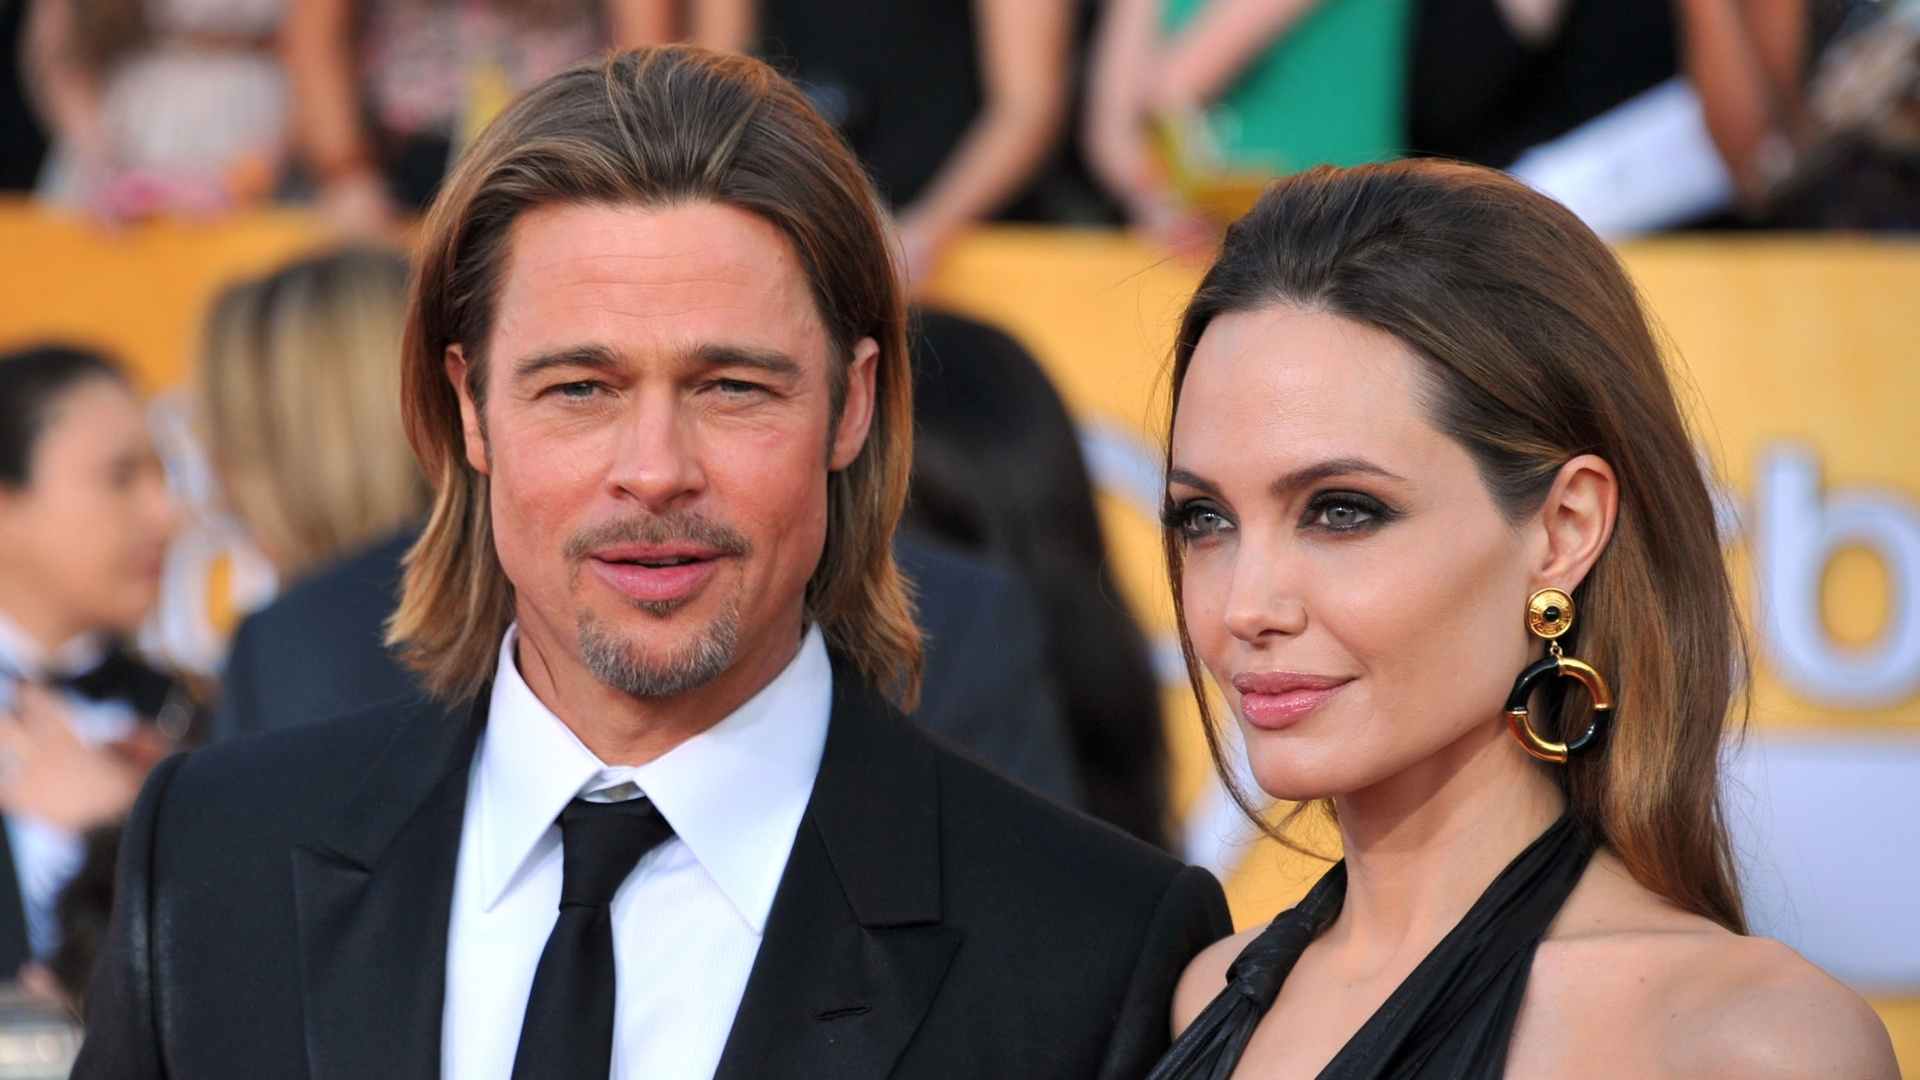 O casal Angelina Jolie e Brad Pitt chegam ao Screen Actors Guild Awards em Los Angeles (29/1/12)